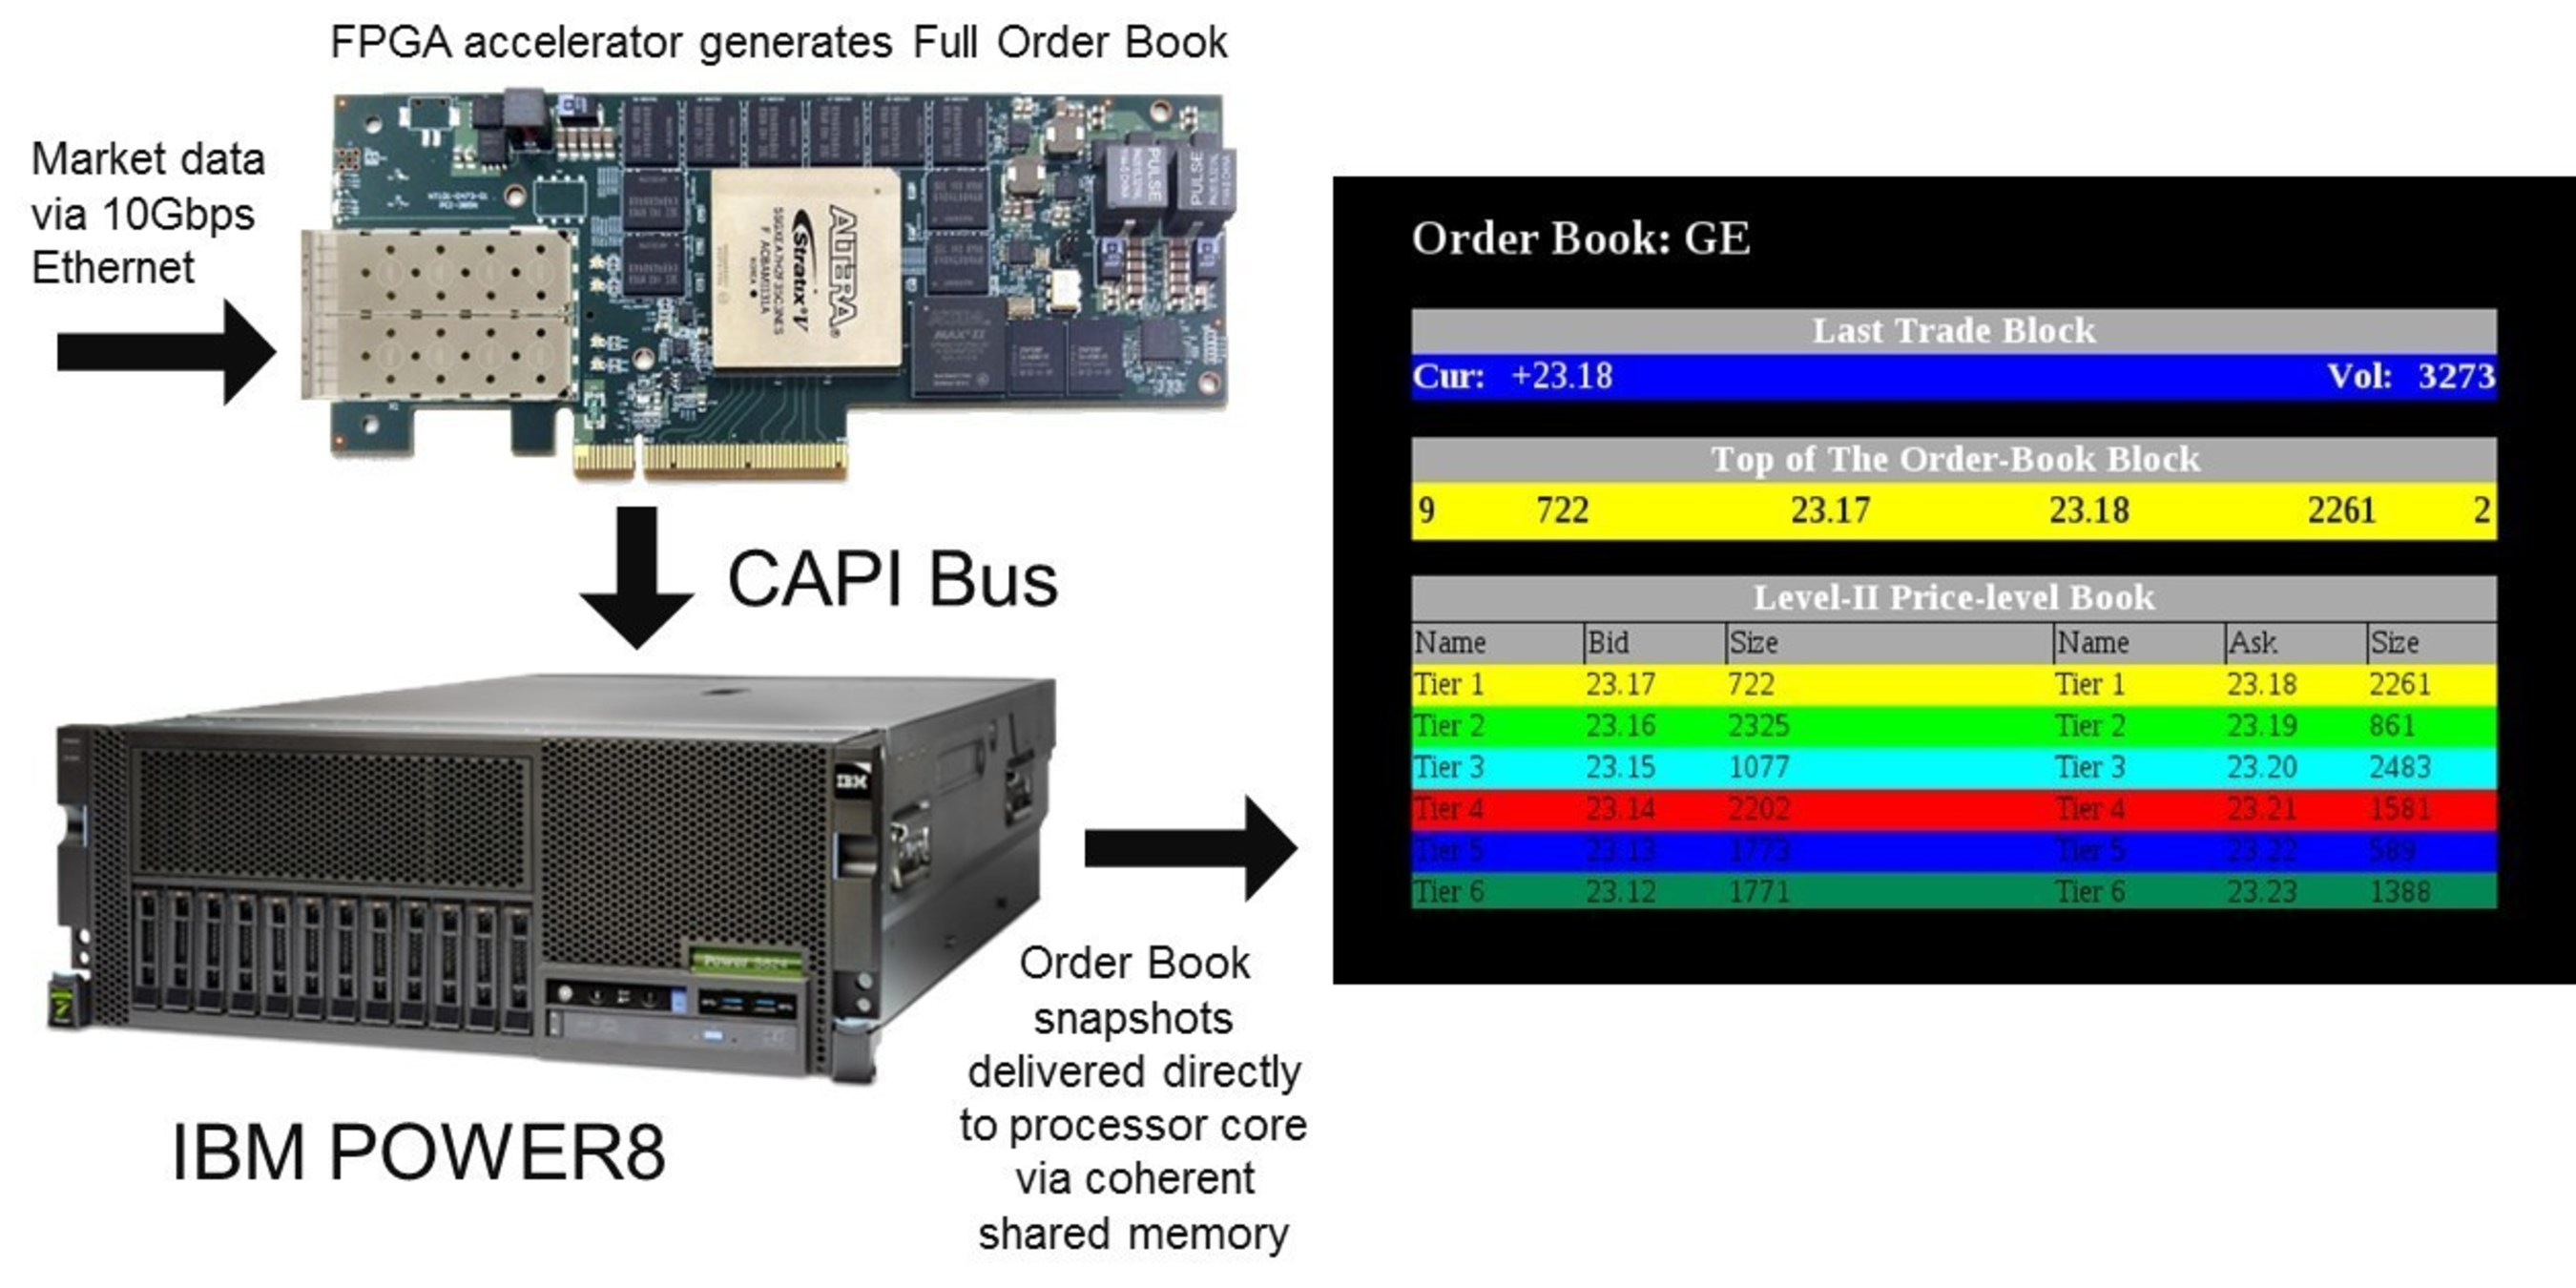 Algo-Logic Systems launches CAPI enabled Order Book running on IBM® POWER8™ server